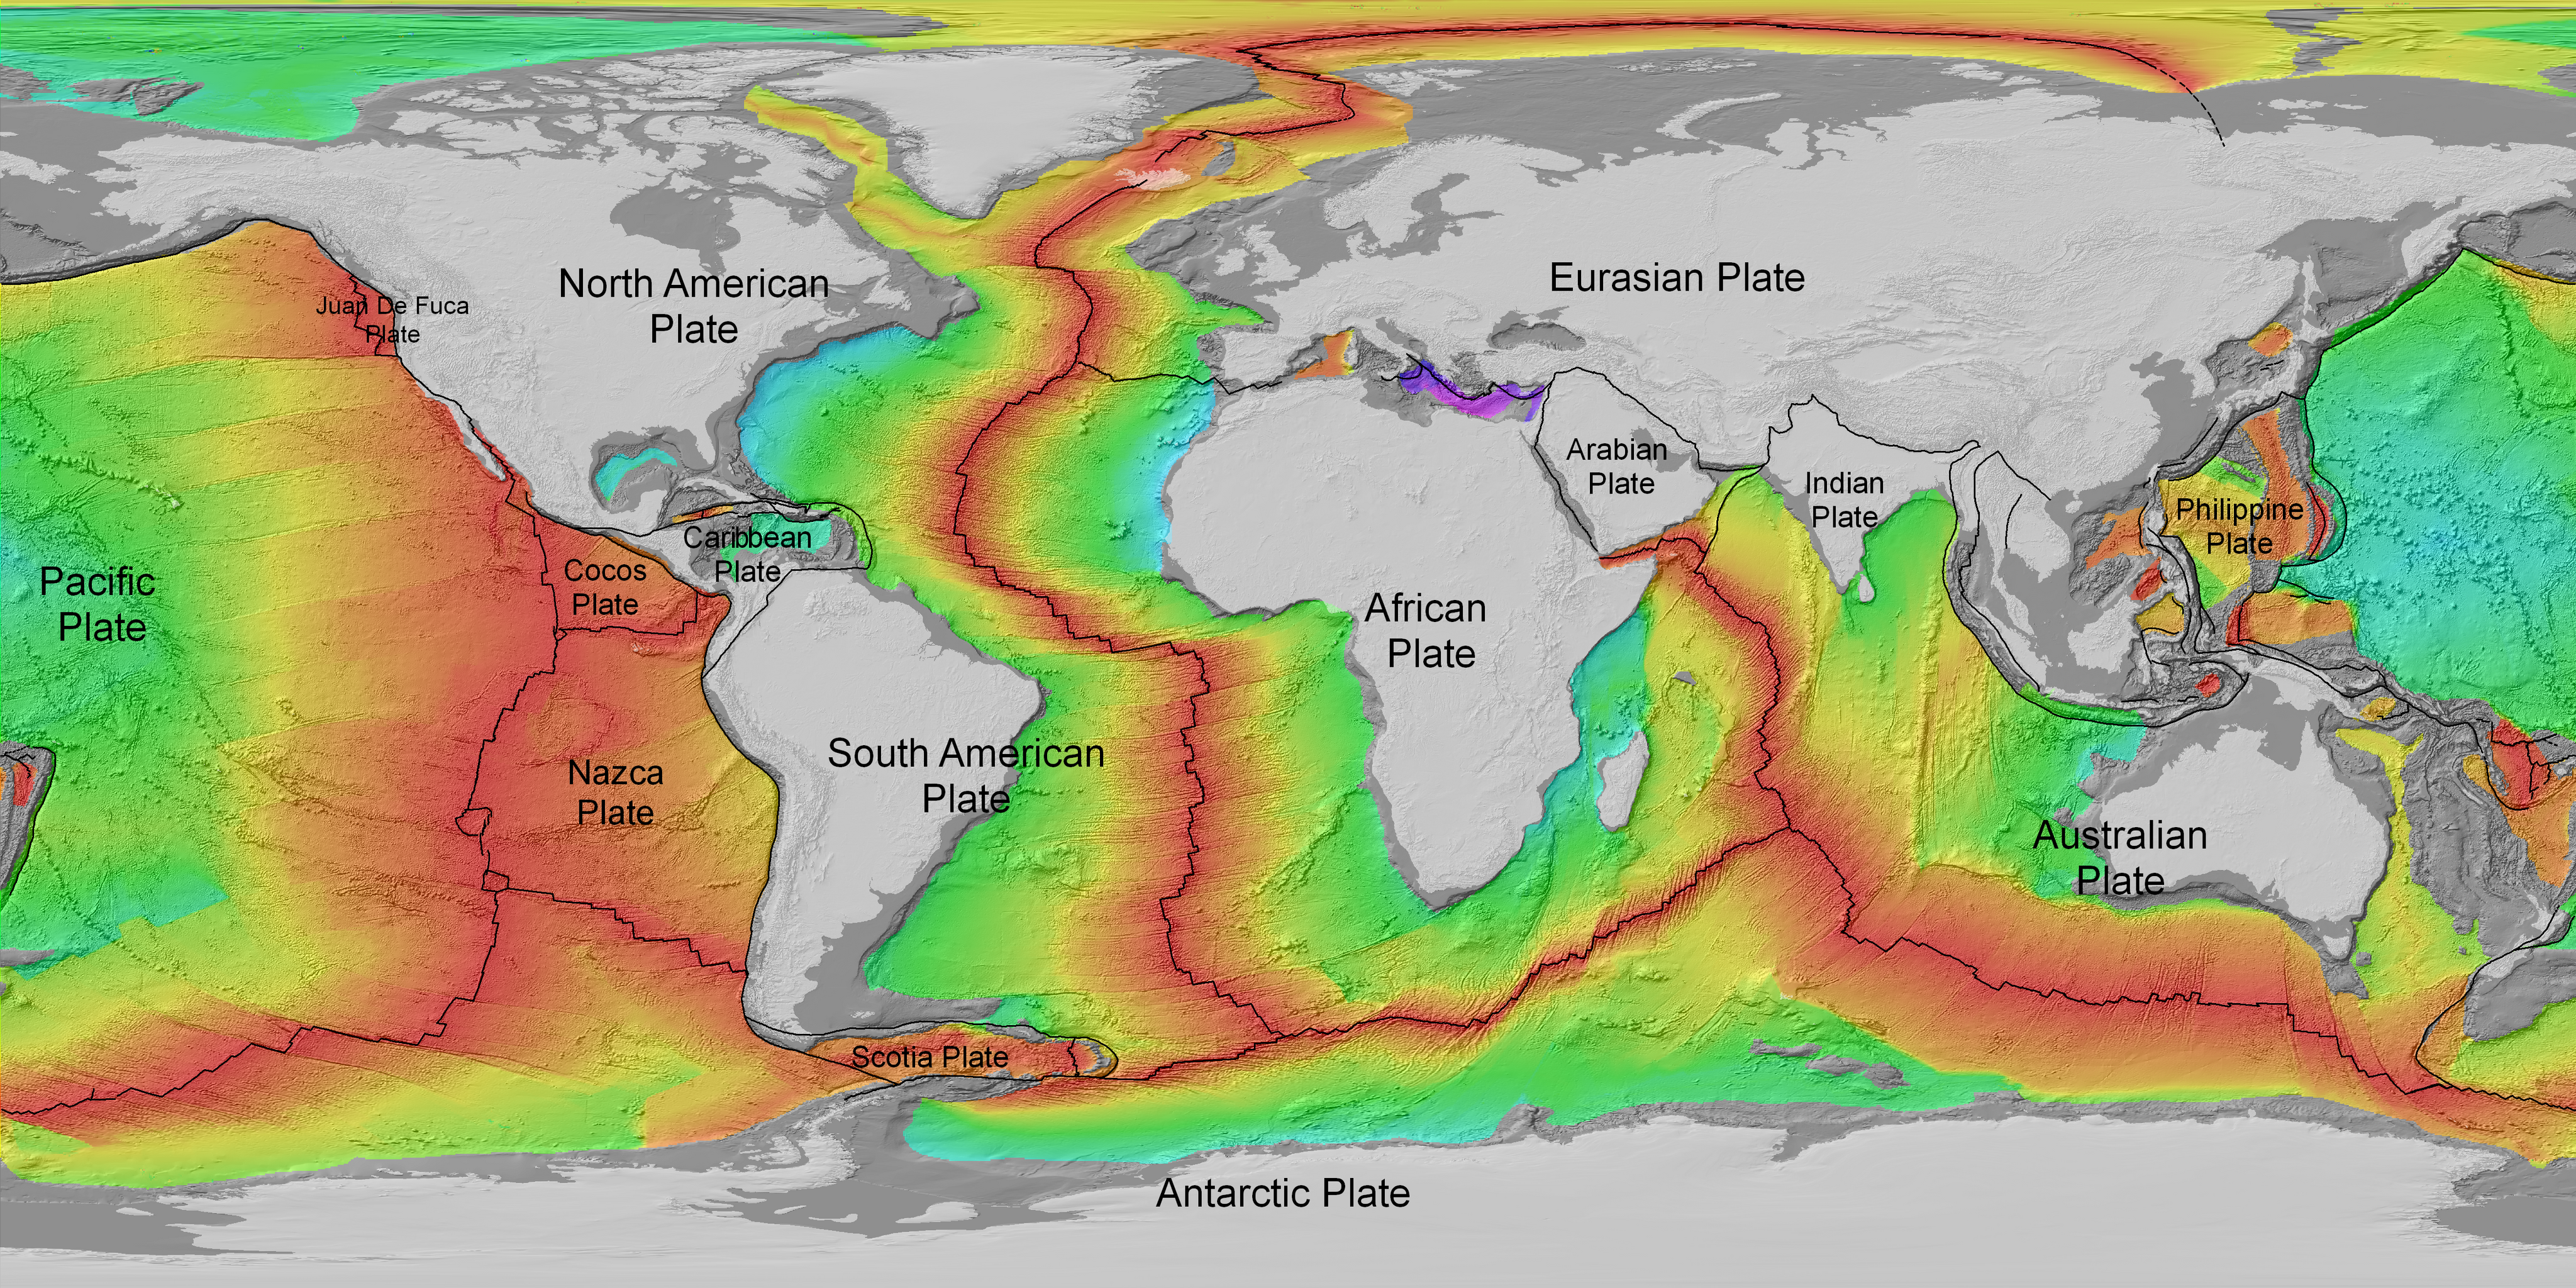 Age of the Seafloor (topography) Dataset | Science On a Sphere